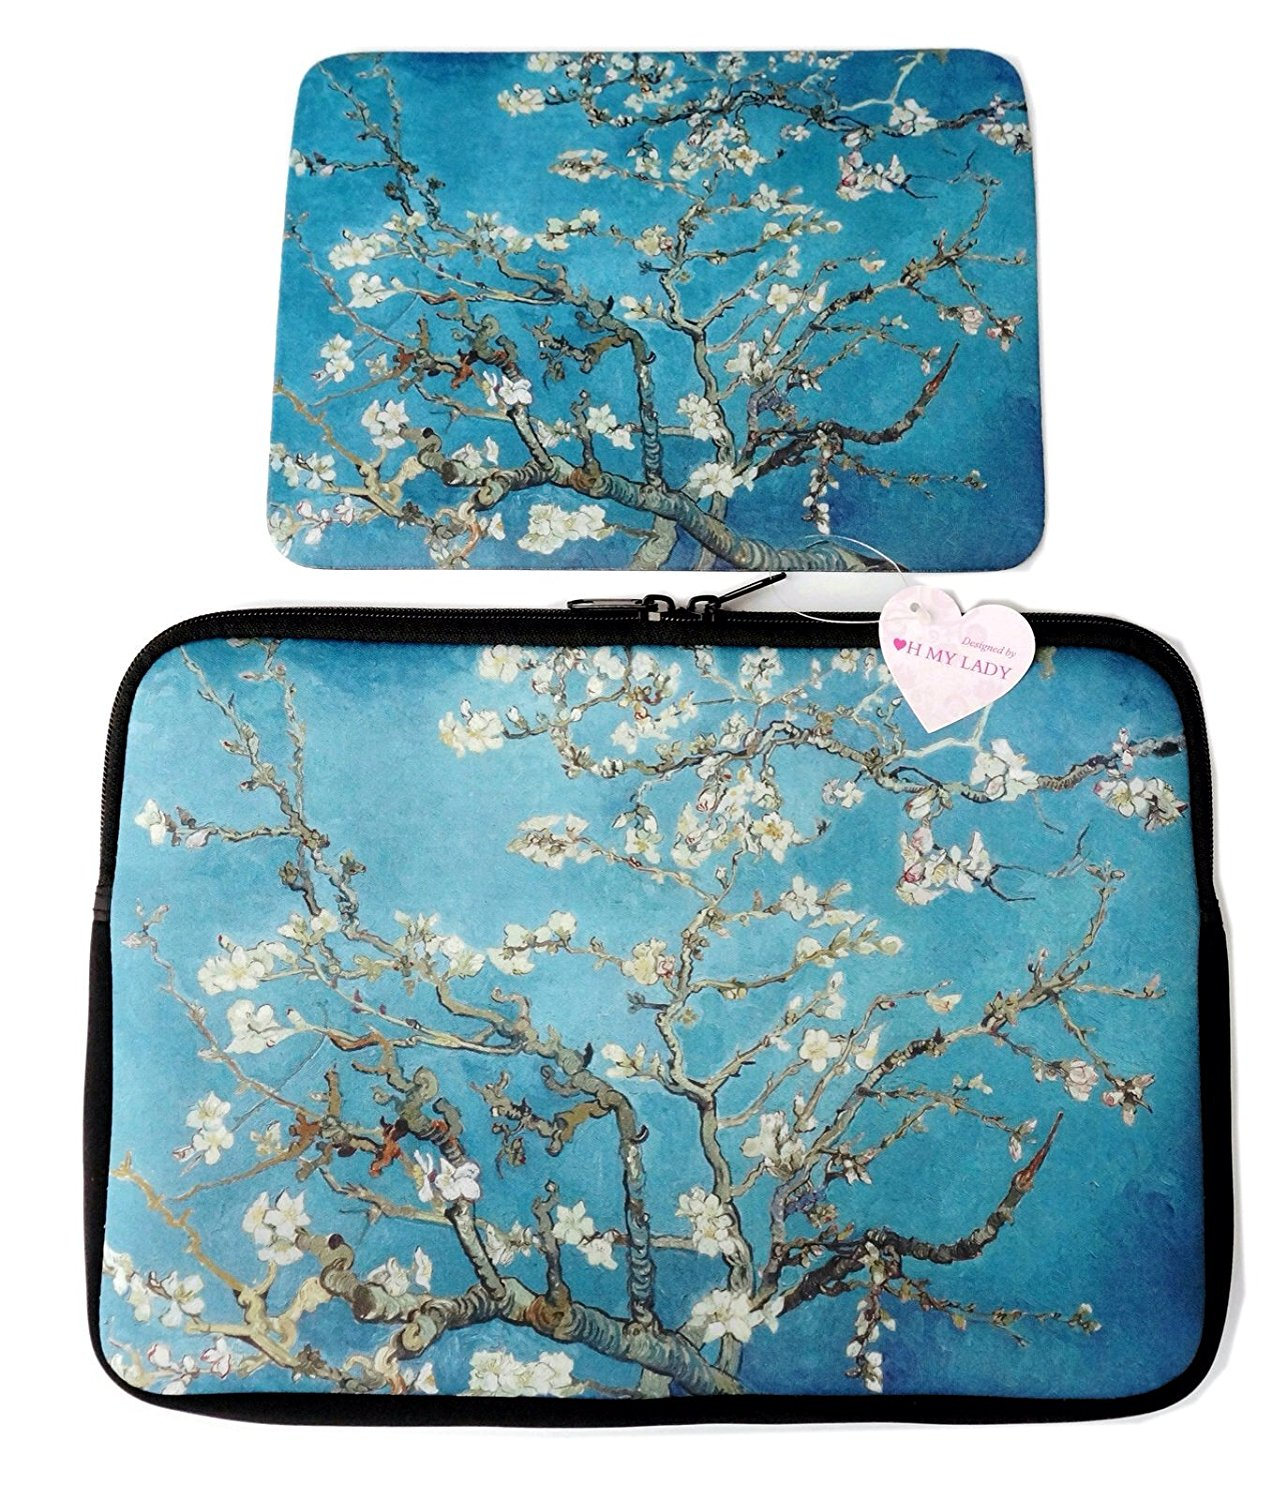 """Oh My Lady* 13-13.3"""" inch Van Gogh's Masterpiece (Almond Blossom) Oil Painting Neoprene Laptop Case/Sleeve/Bag/Pouch/Cover – Available in 7 Patterns"""